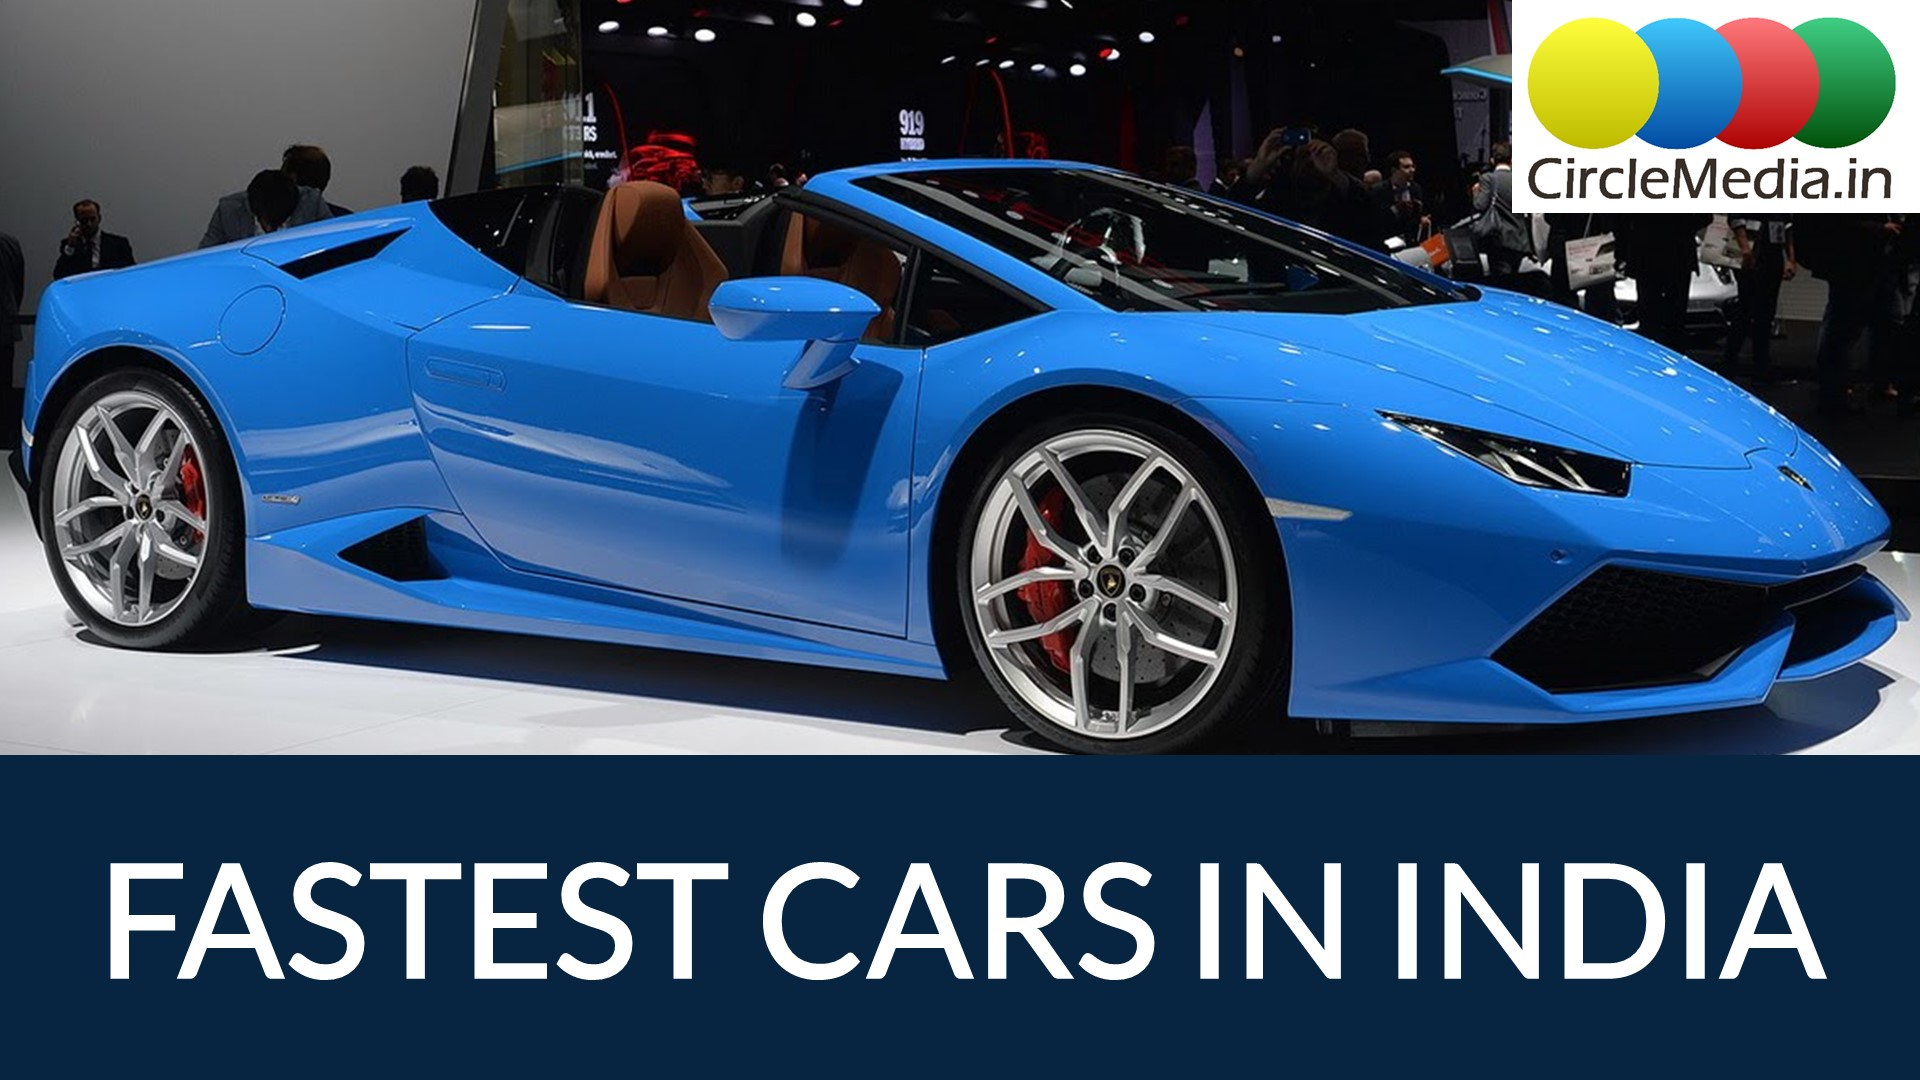 Best Cars And Top 10 Lists: Top 10 Fastest Cars In India